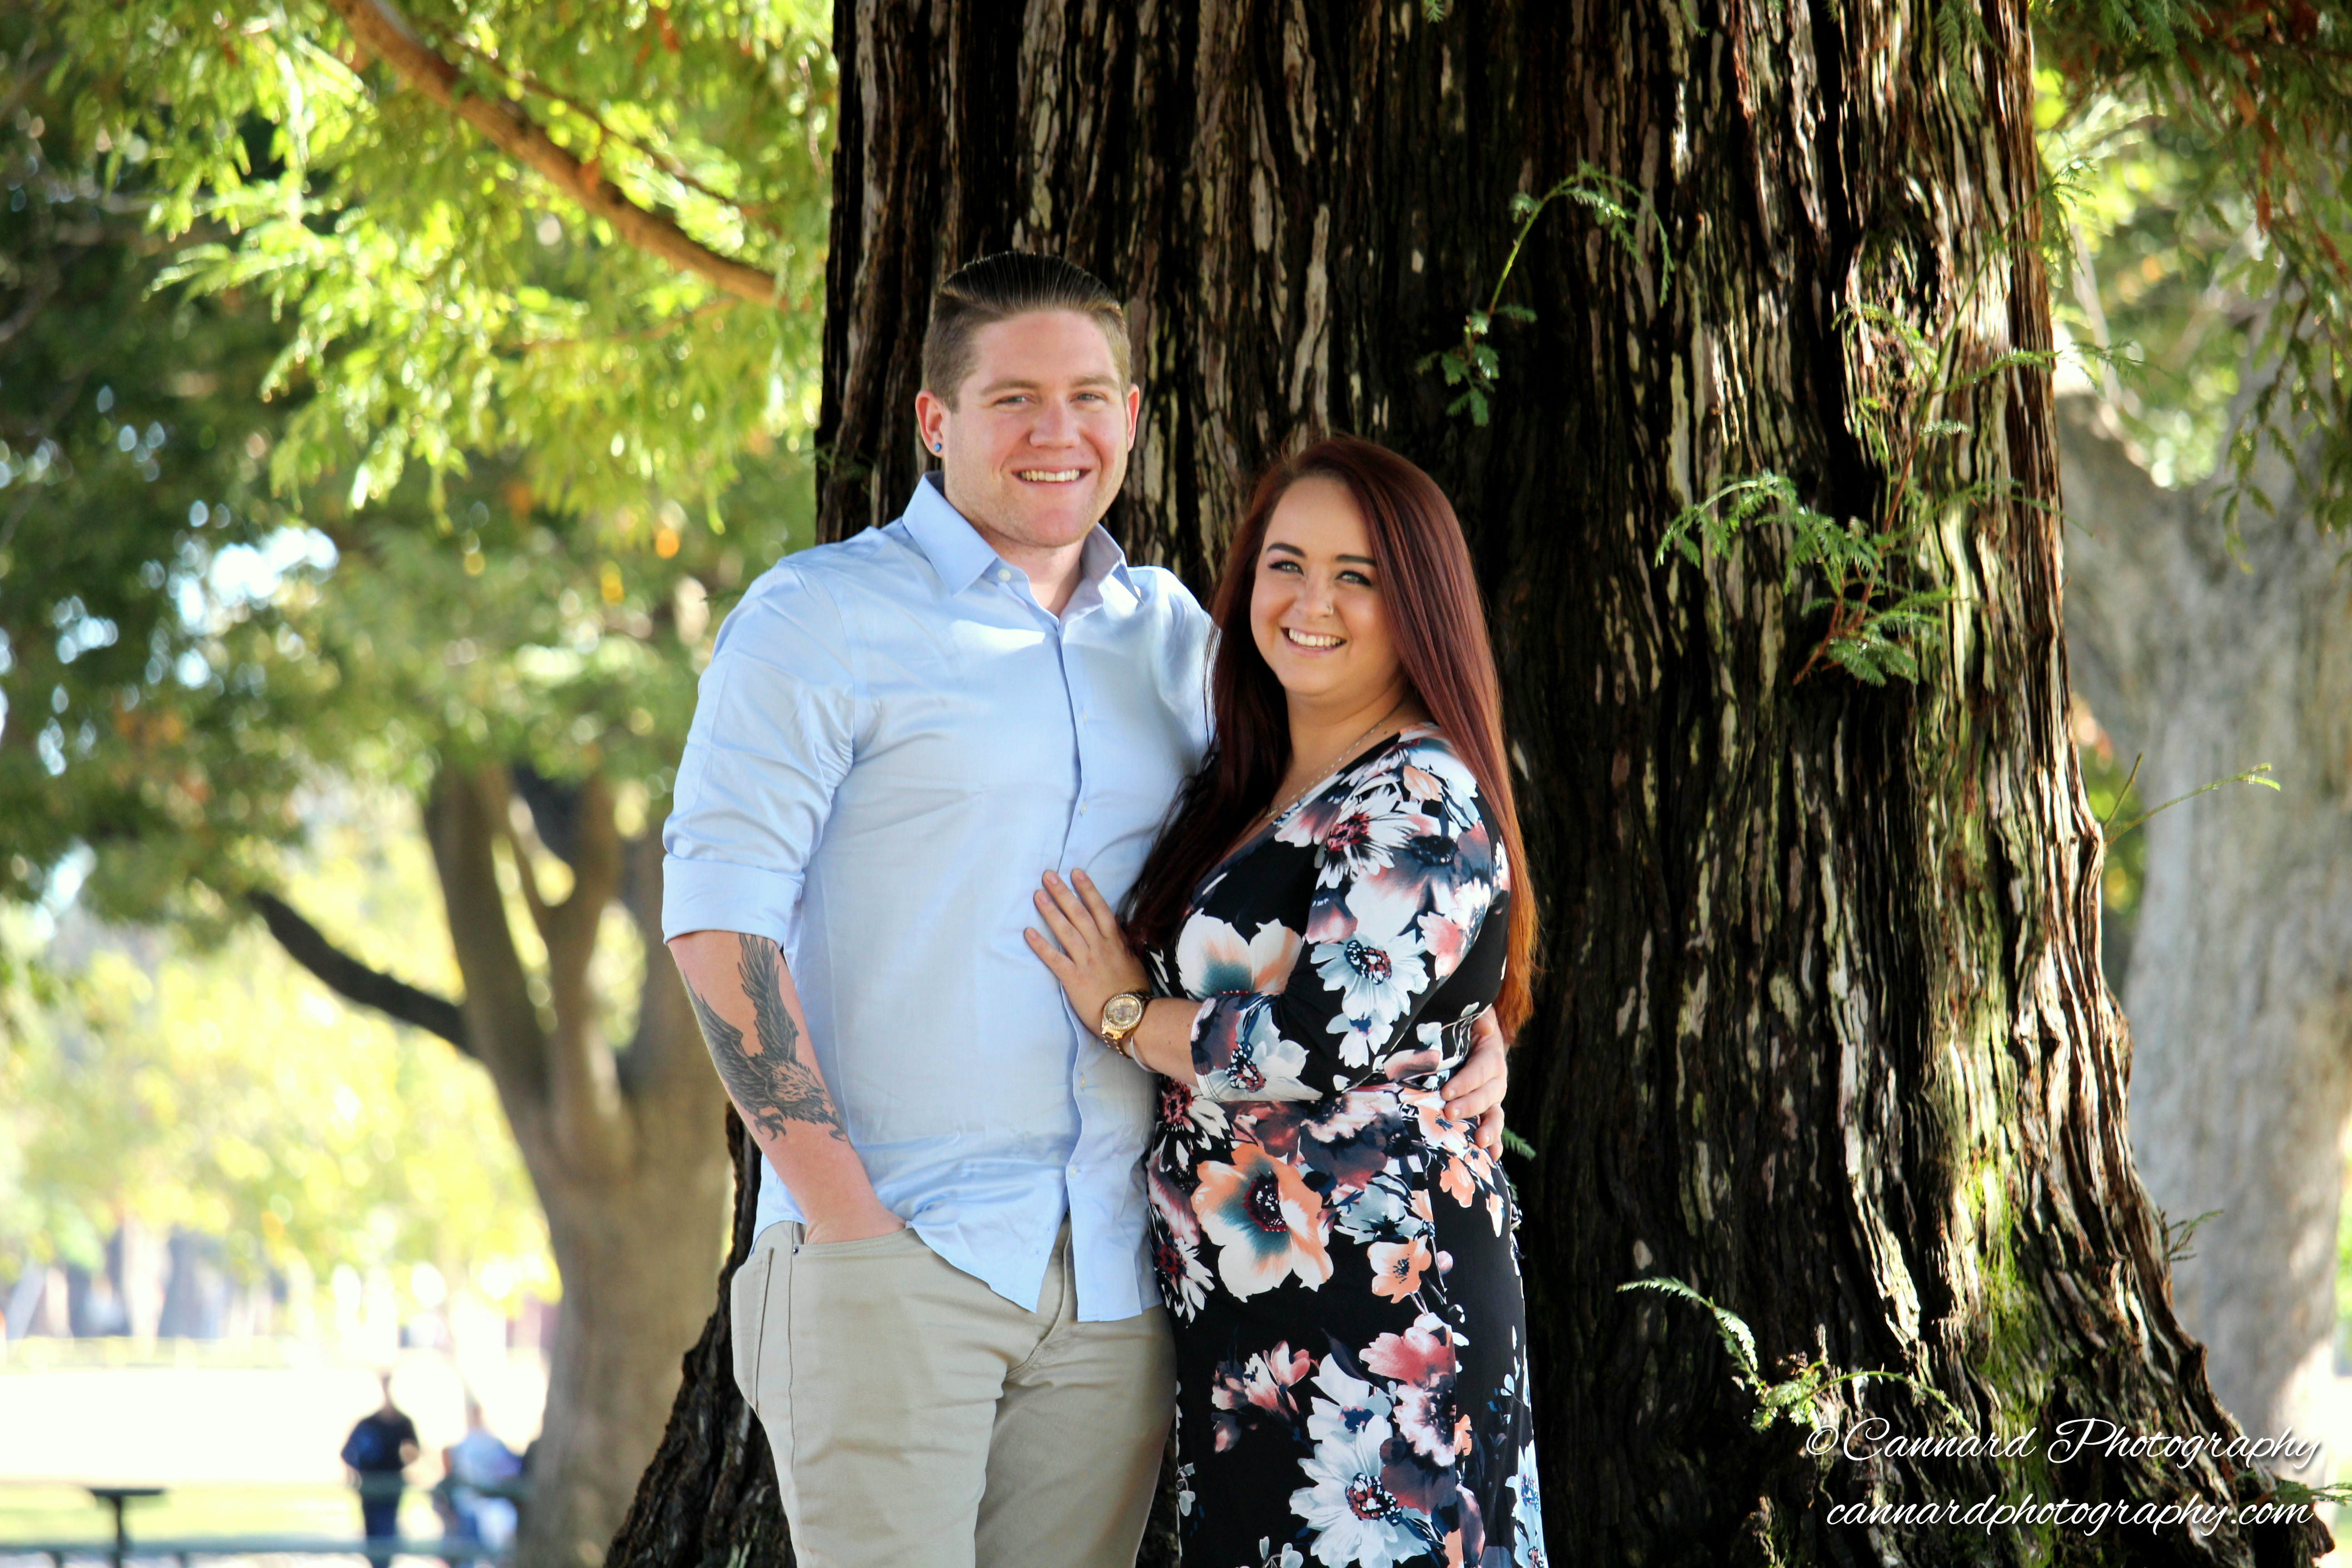 Client Photo Shoots | Couples